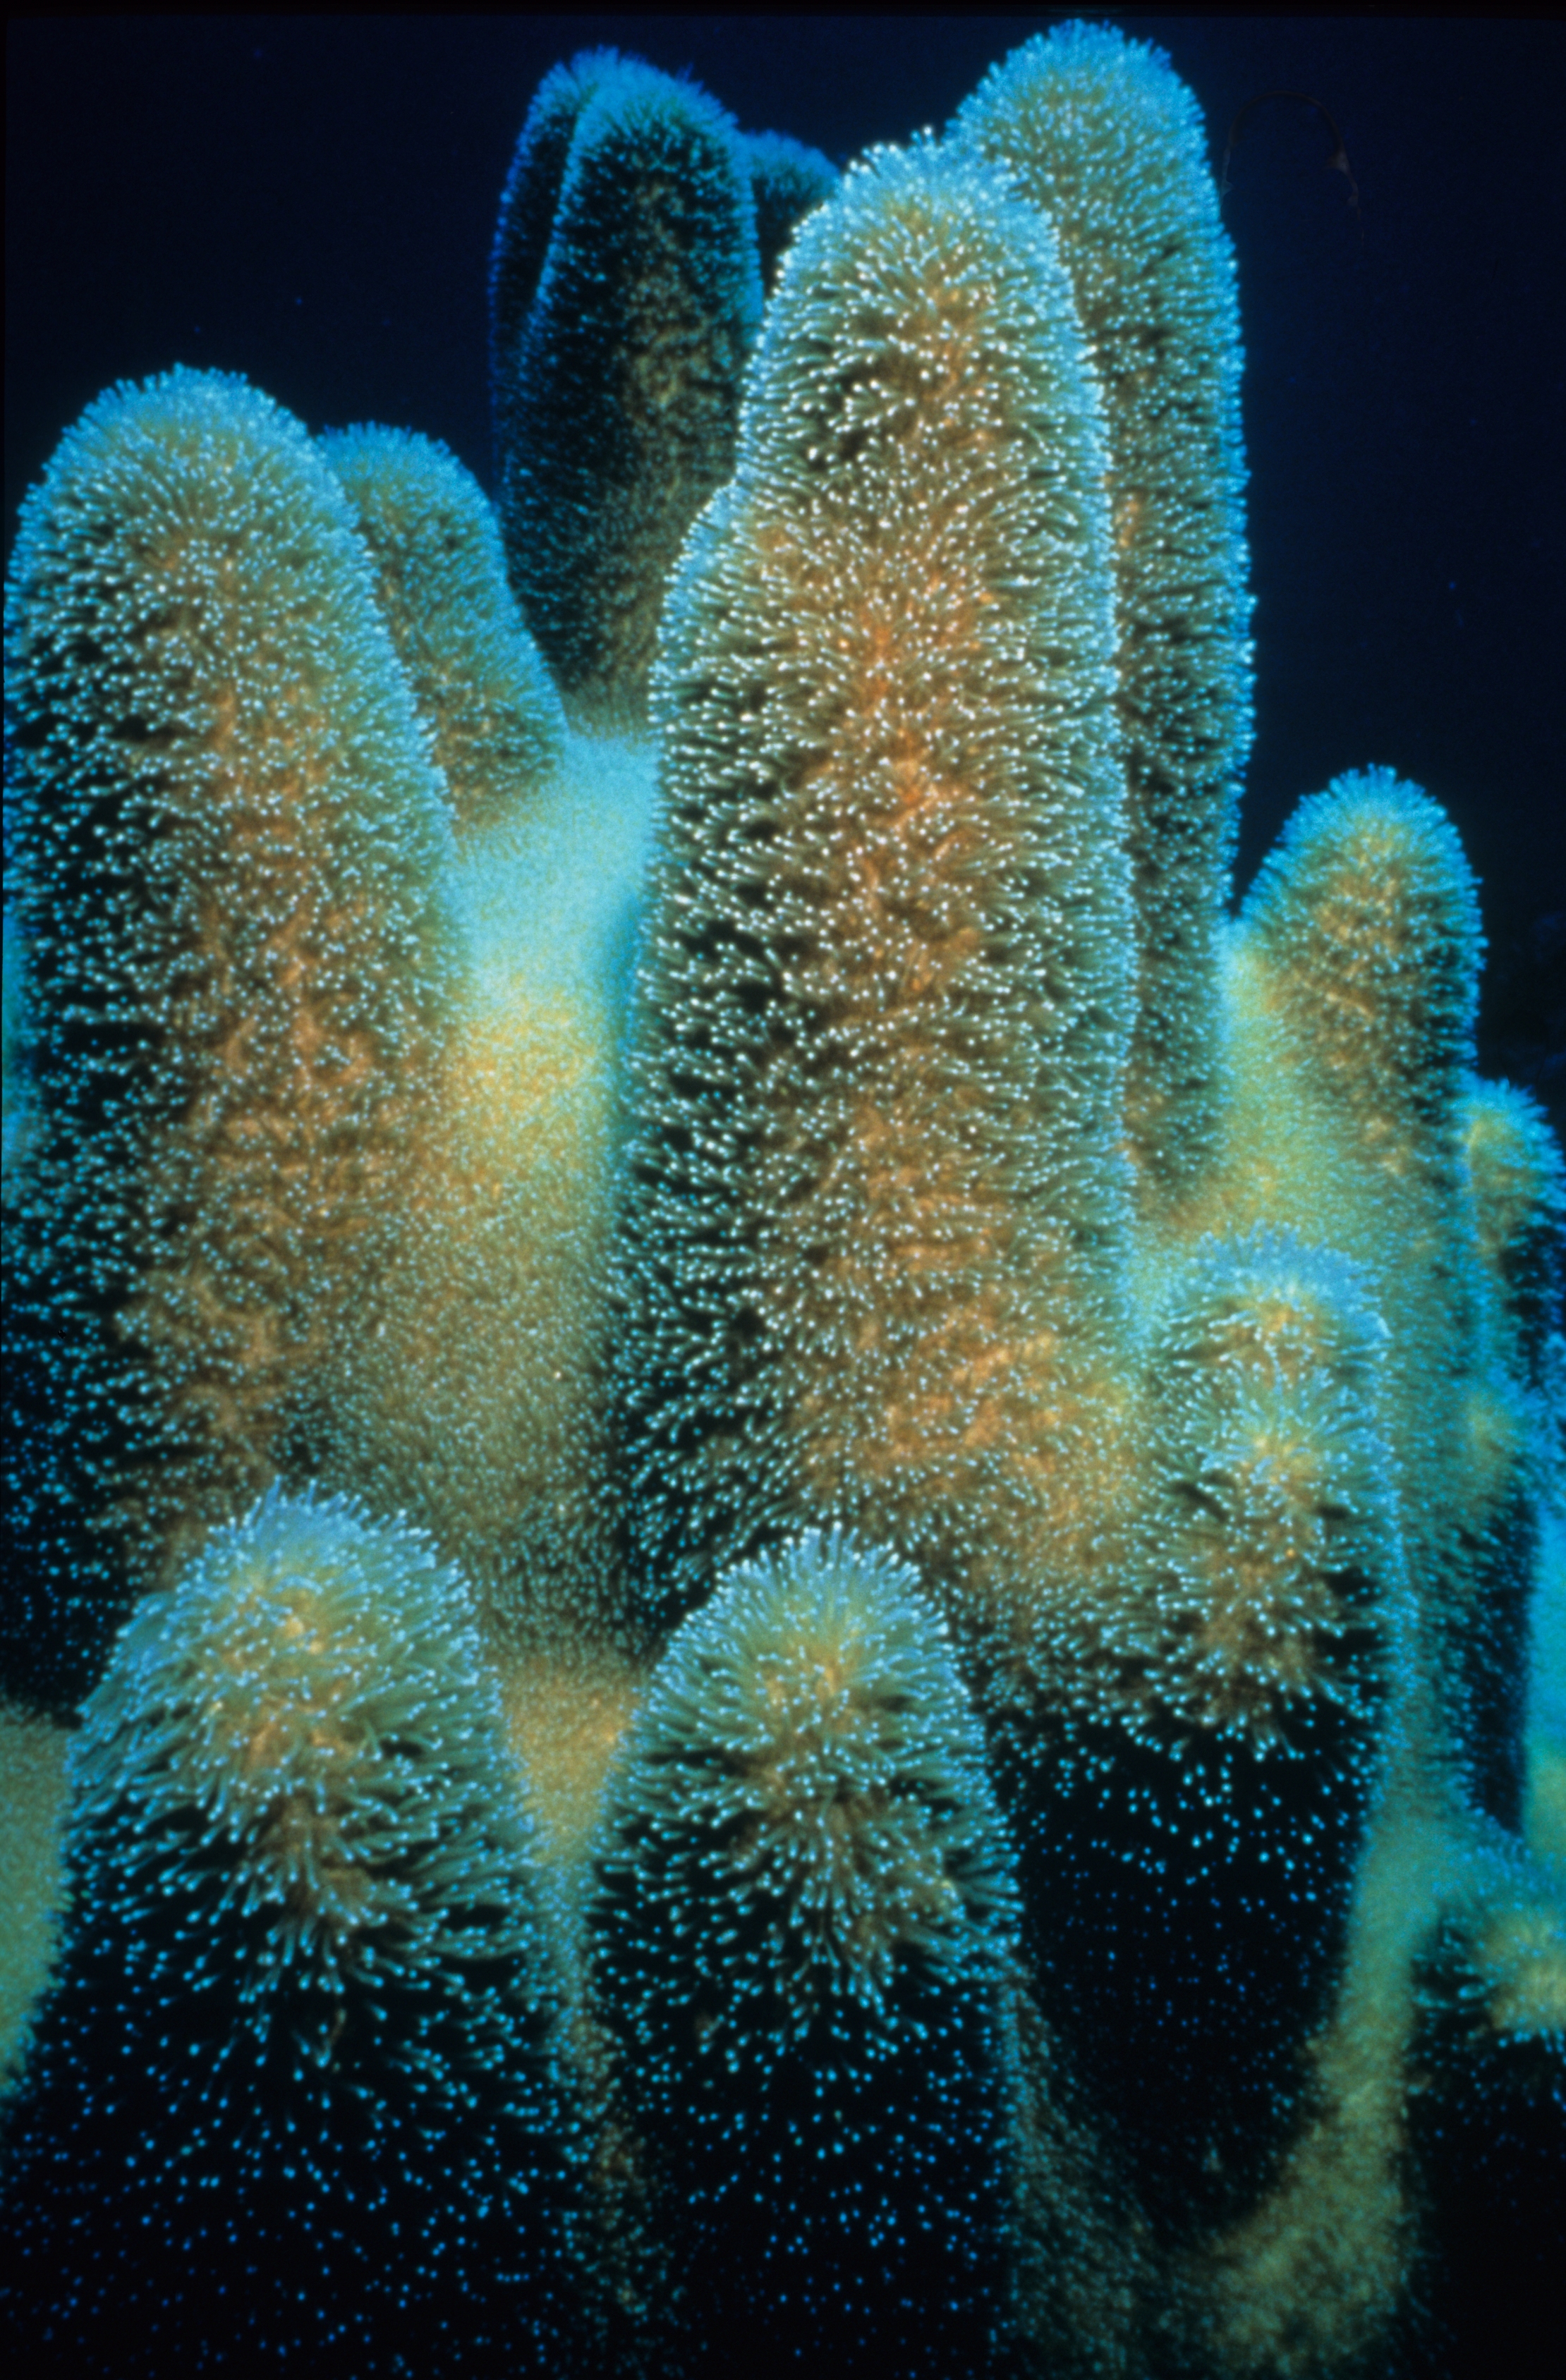 [Pillar coral] Photo by William Harrigan, NOAA Corps (ret.).